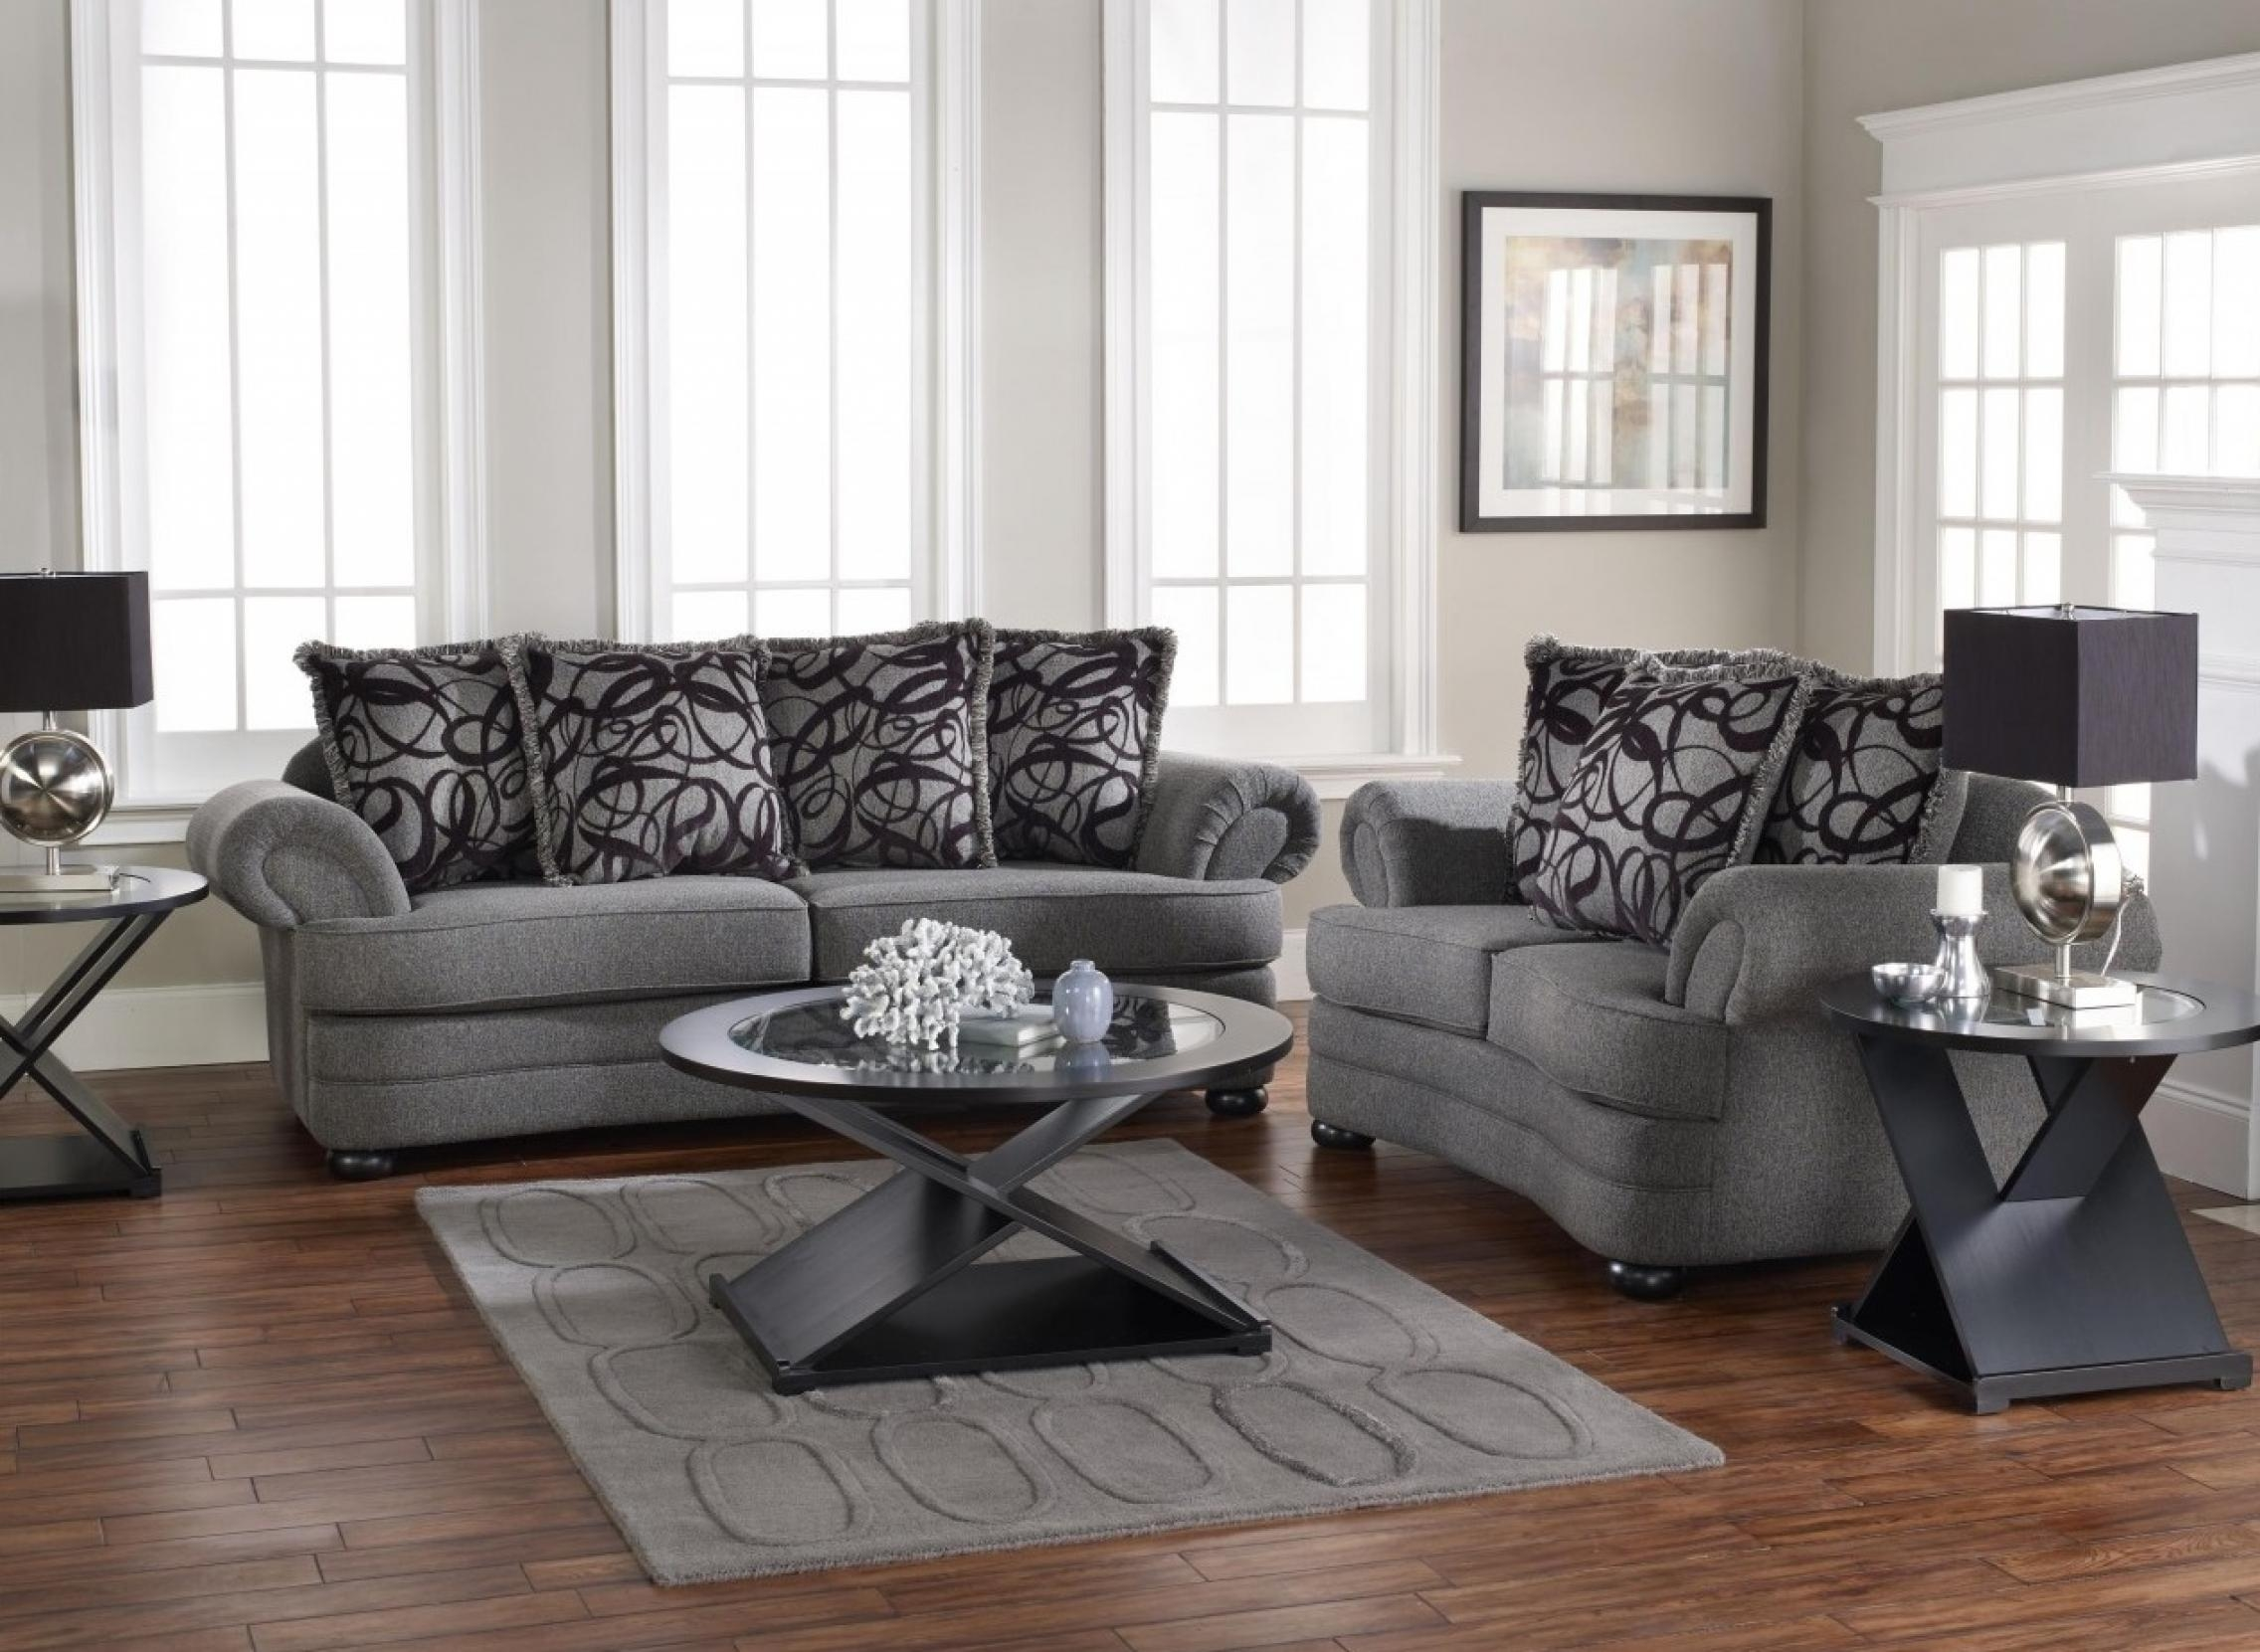 Best Grey Living Room Chairs Contemporary – Home Design Ideas With Grey Sofa Chairs (View 15 of 20)